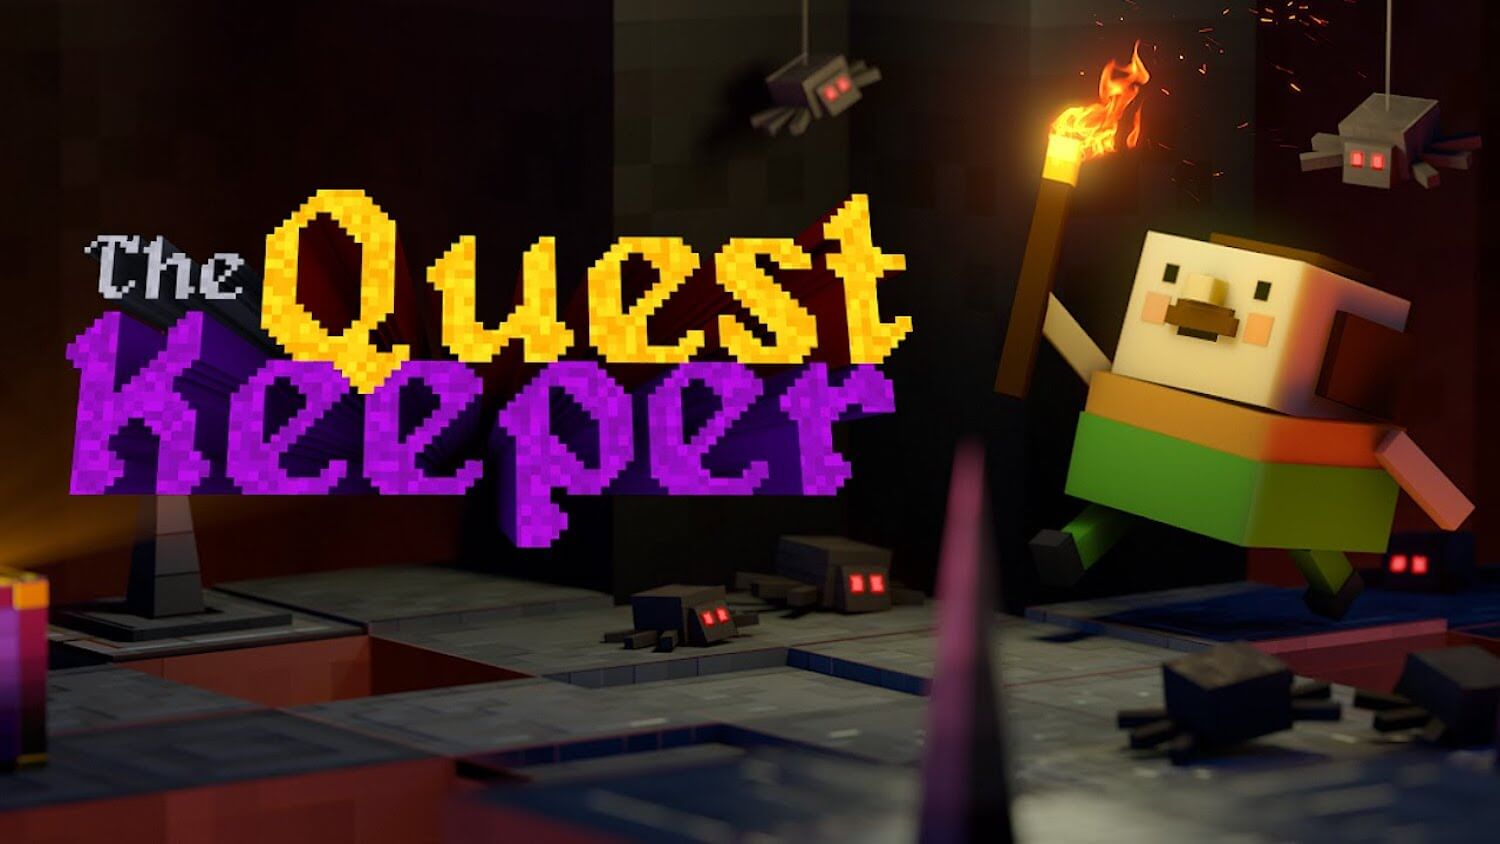 the_quest_keepe_1